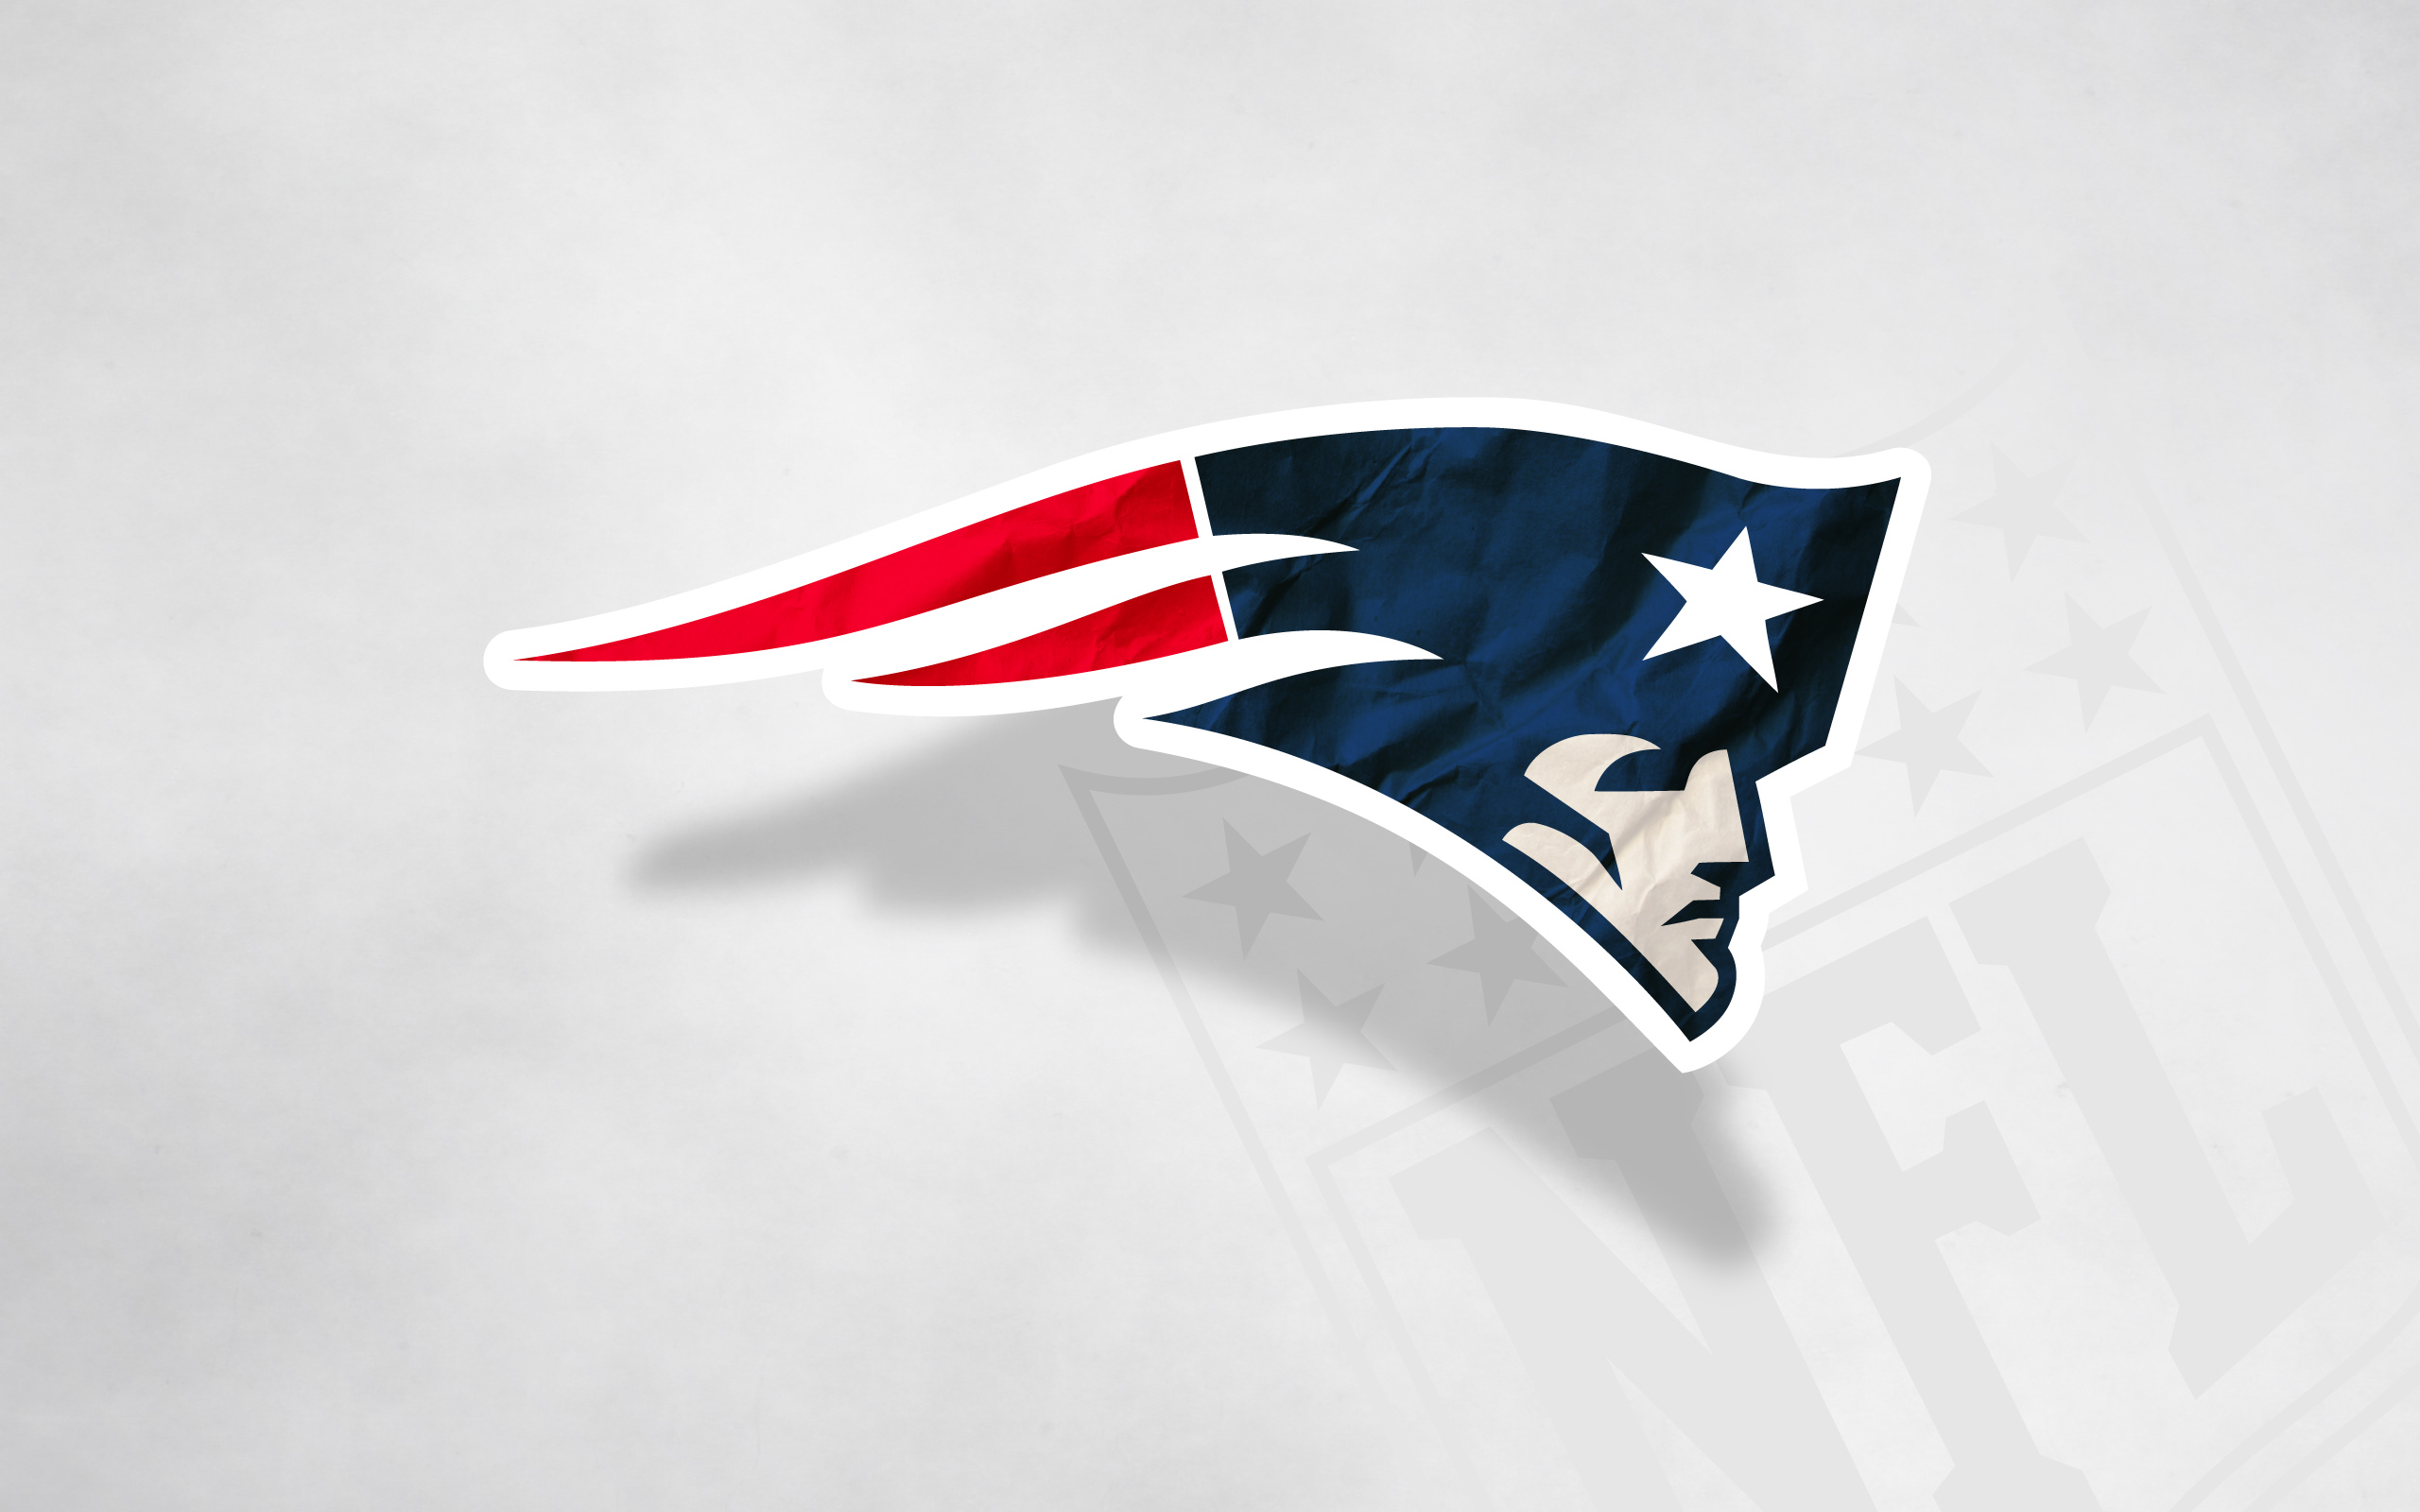 New England Patriots images